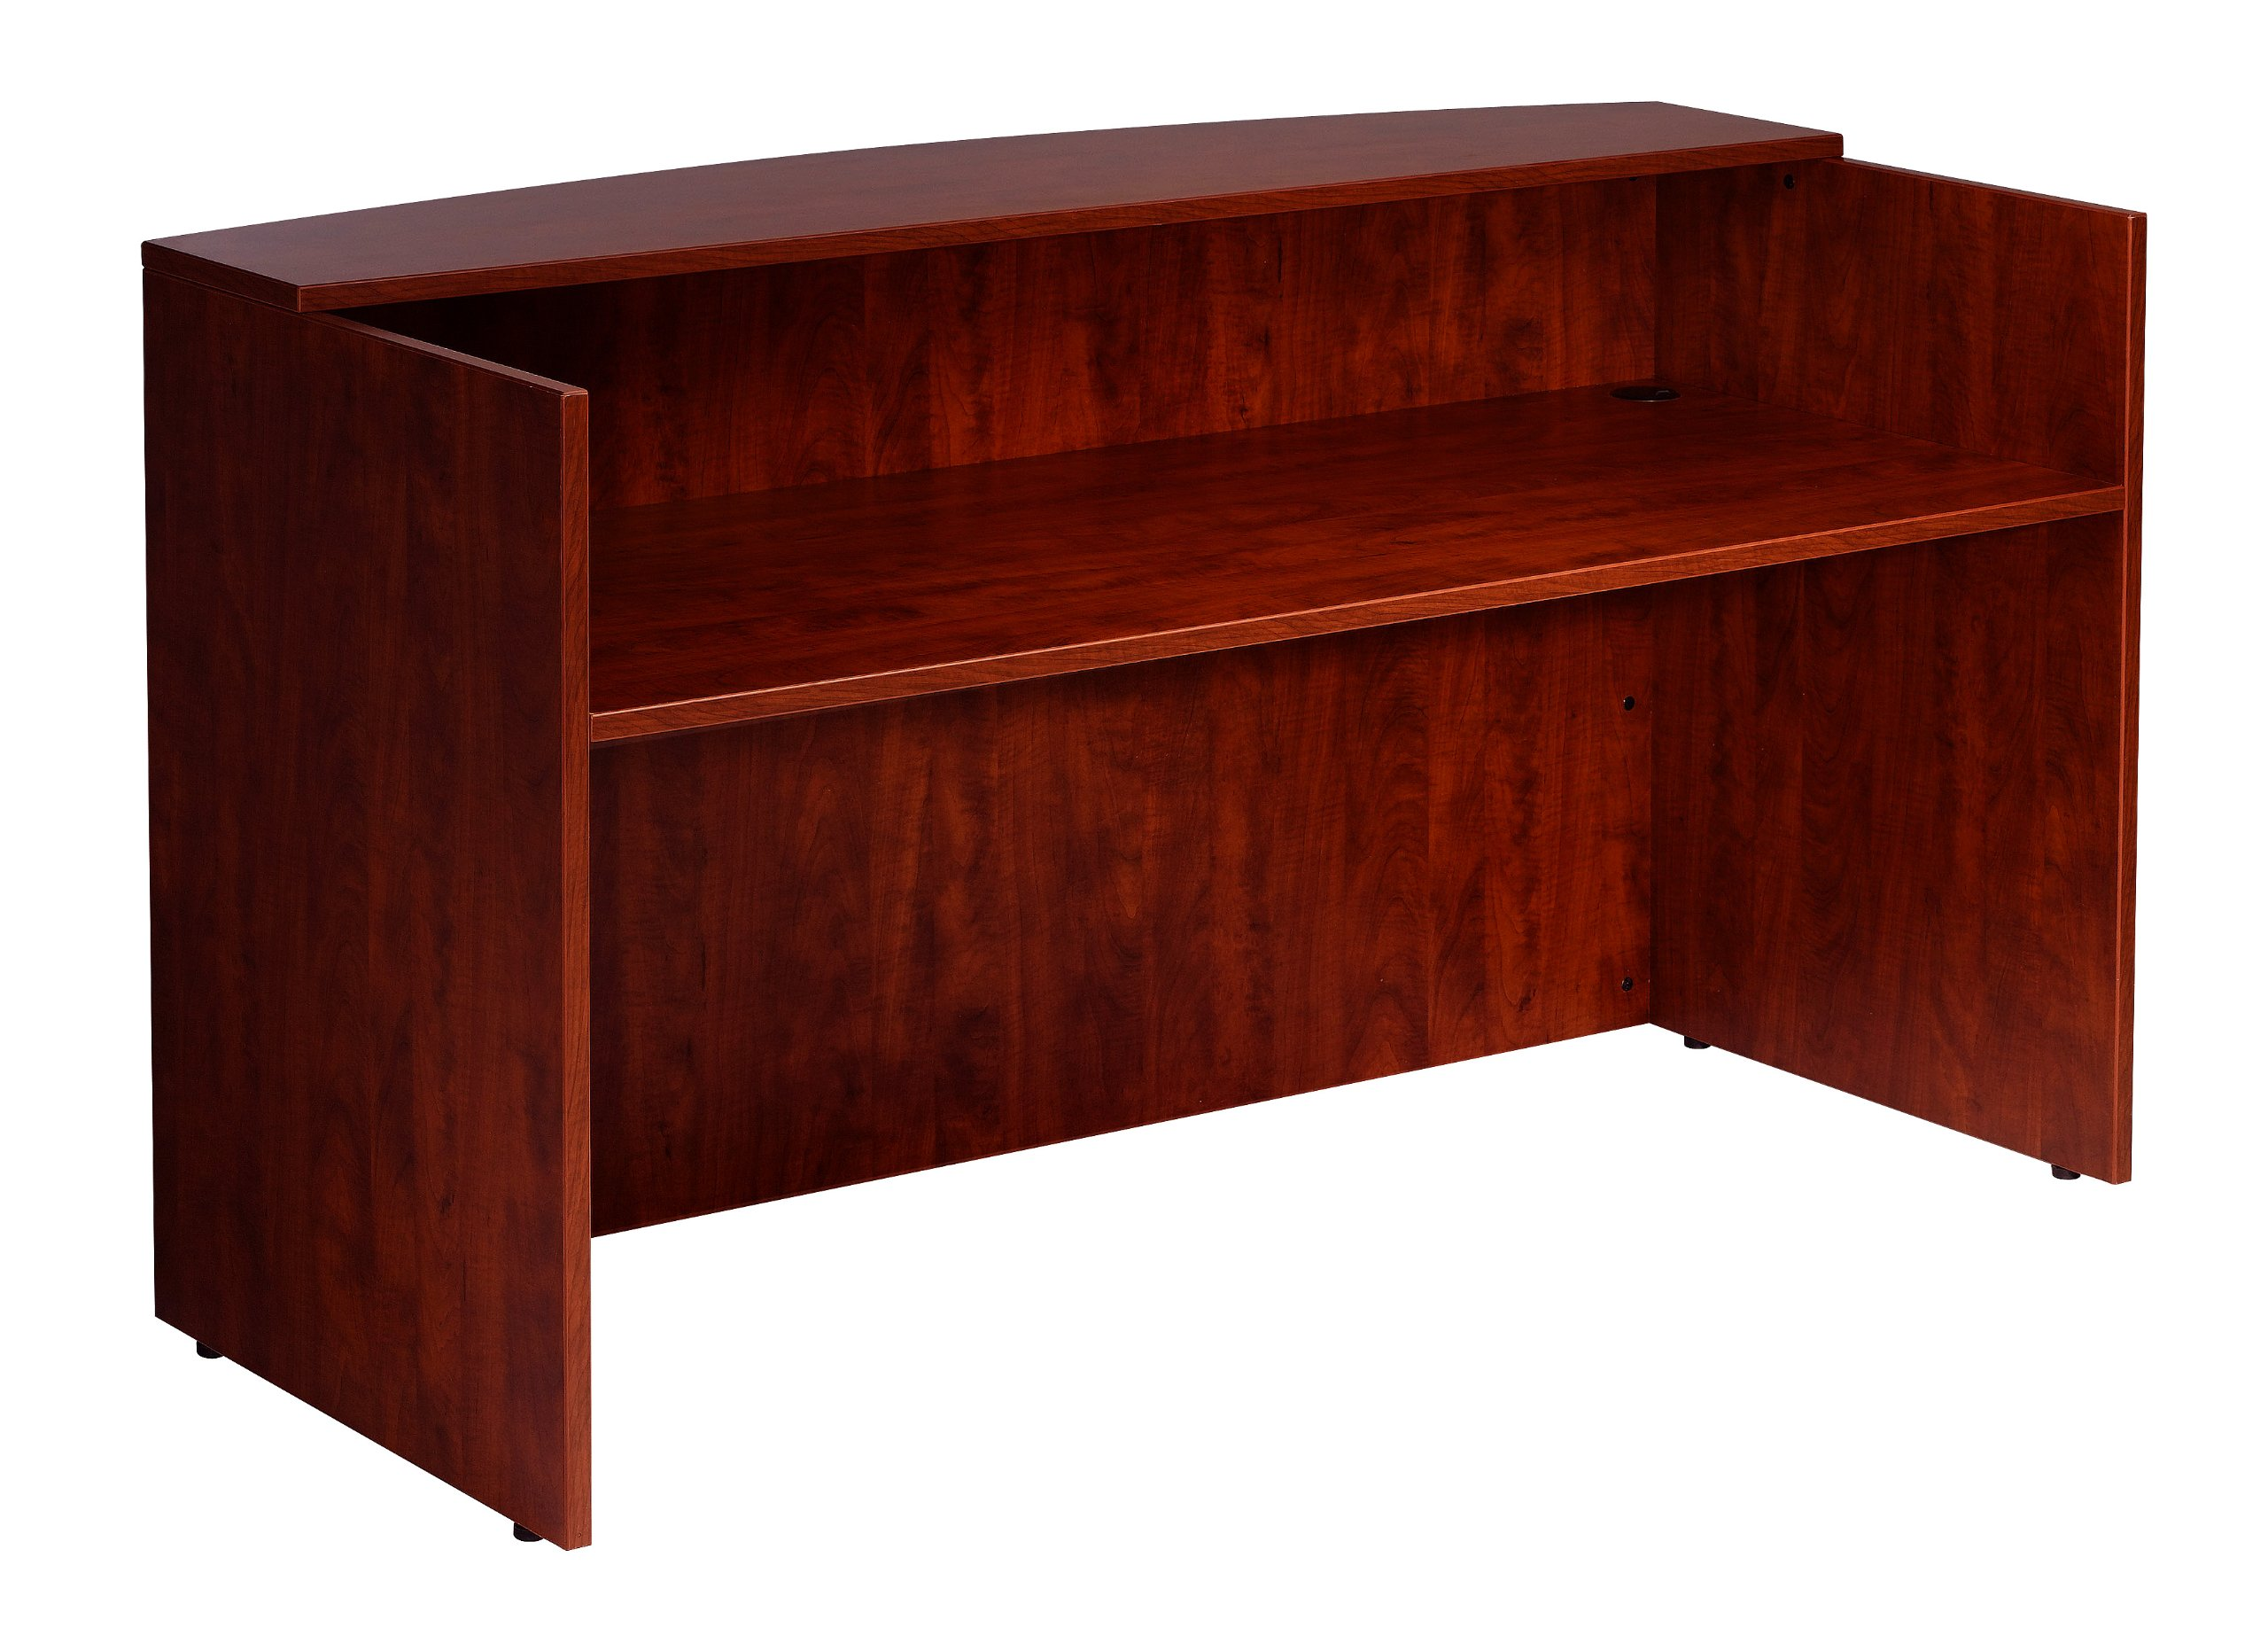 Boss 71 W by 30/36 D by 42 H Reception Desk, Mahogany by Boss Office Products